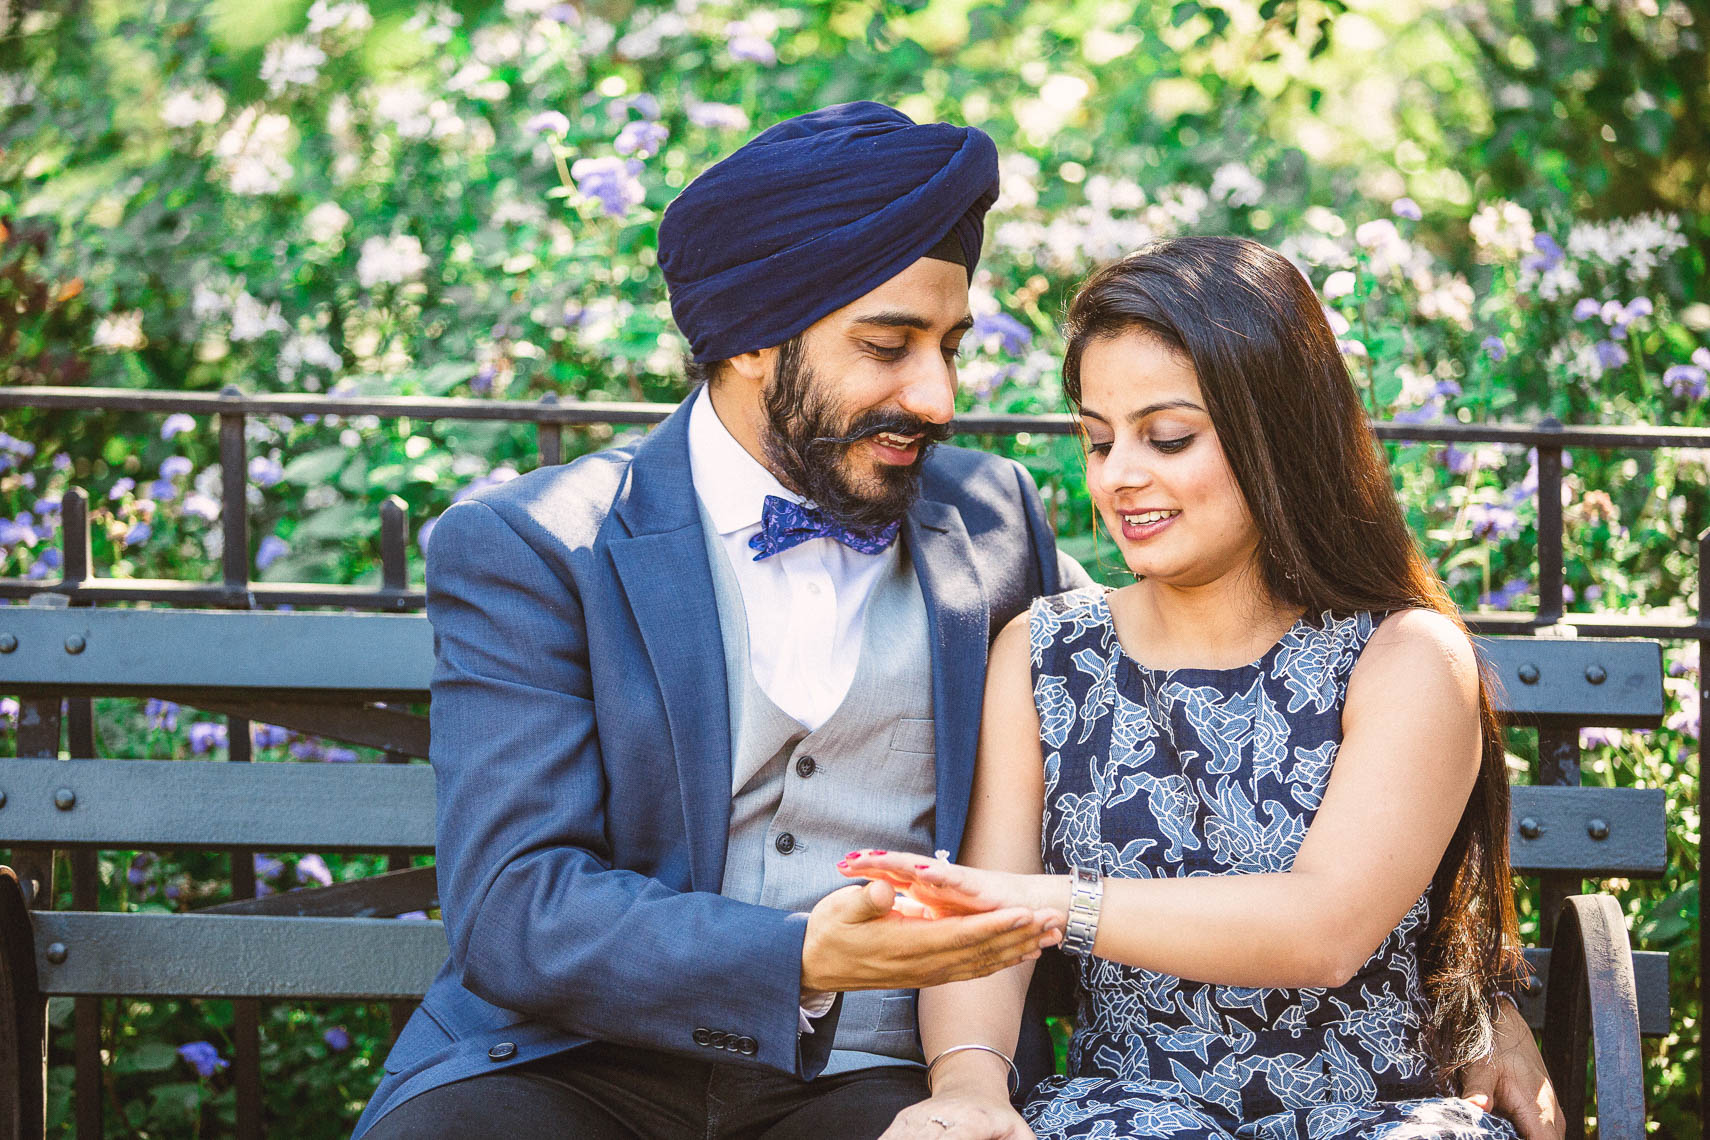 Kathi-Littwin-Photography-Engagement-Photos-4109